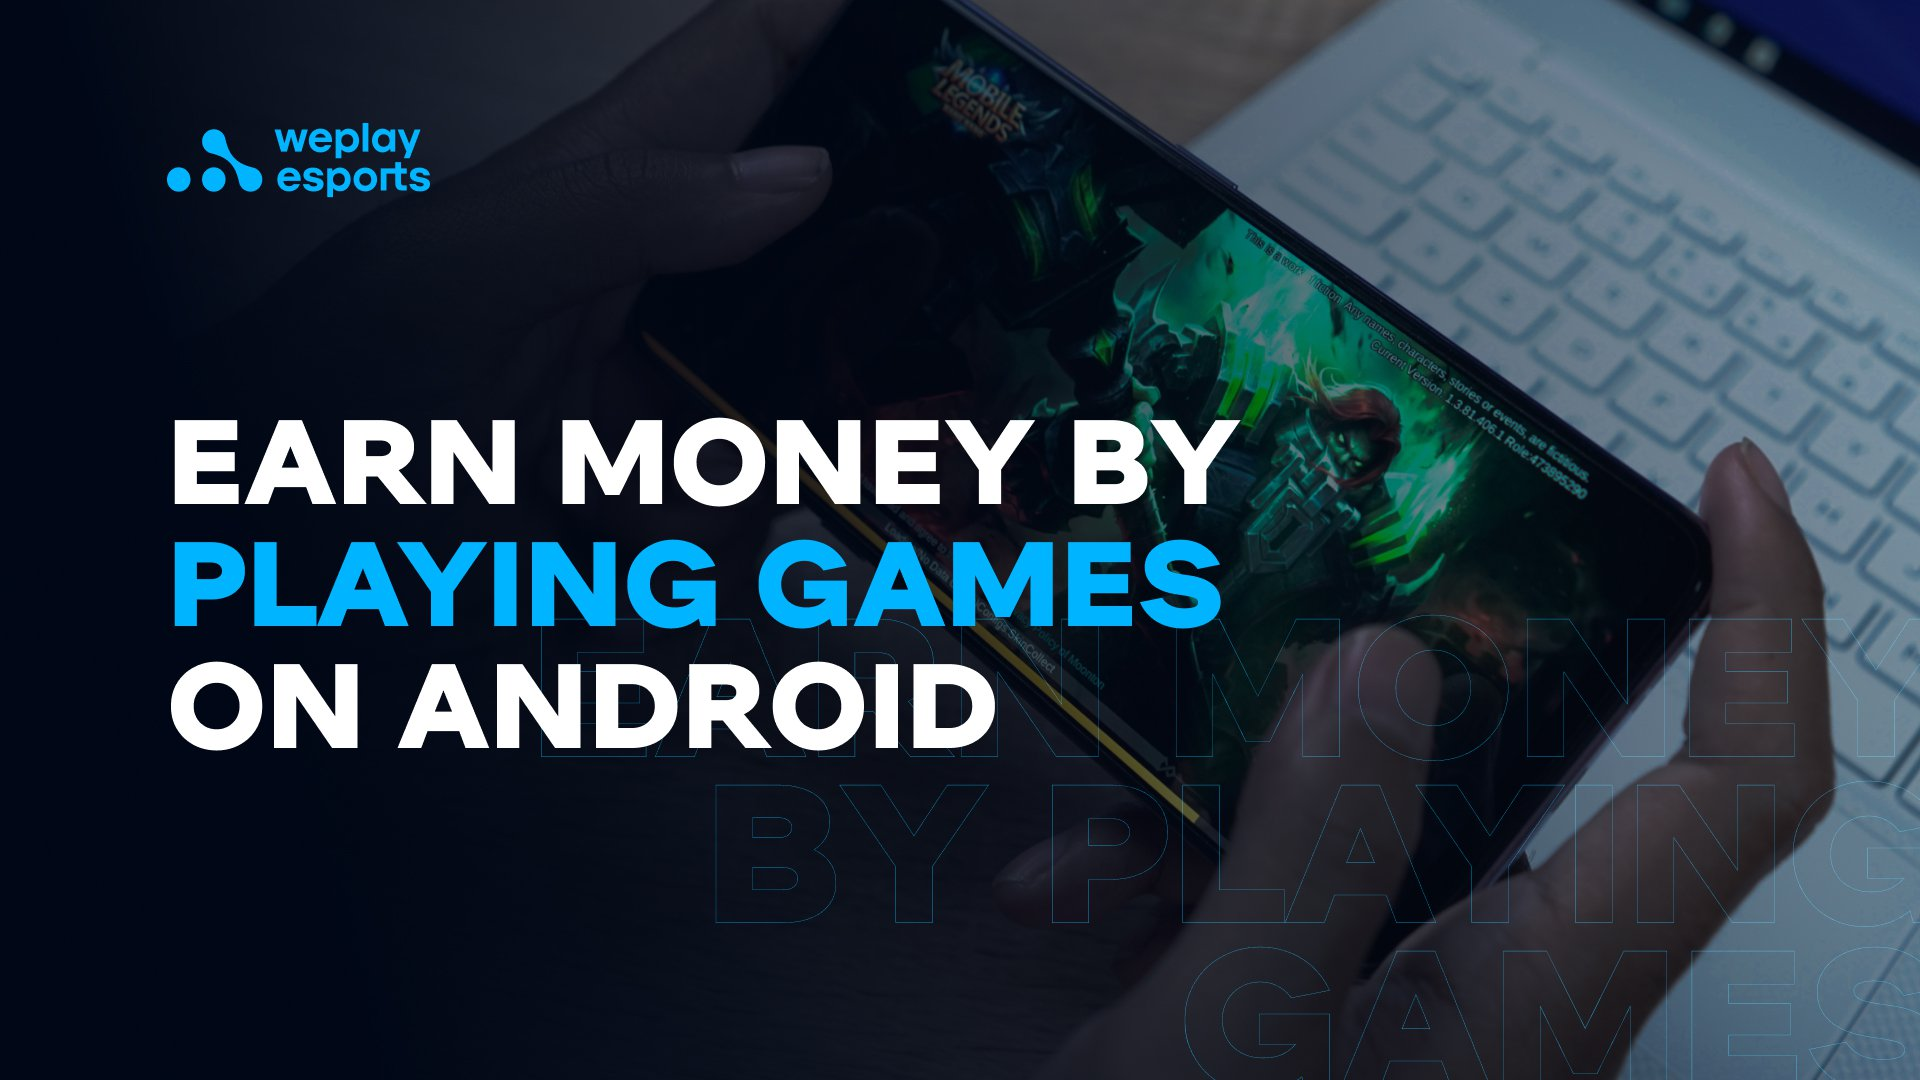 Earn Money by Playing Games on Android